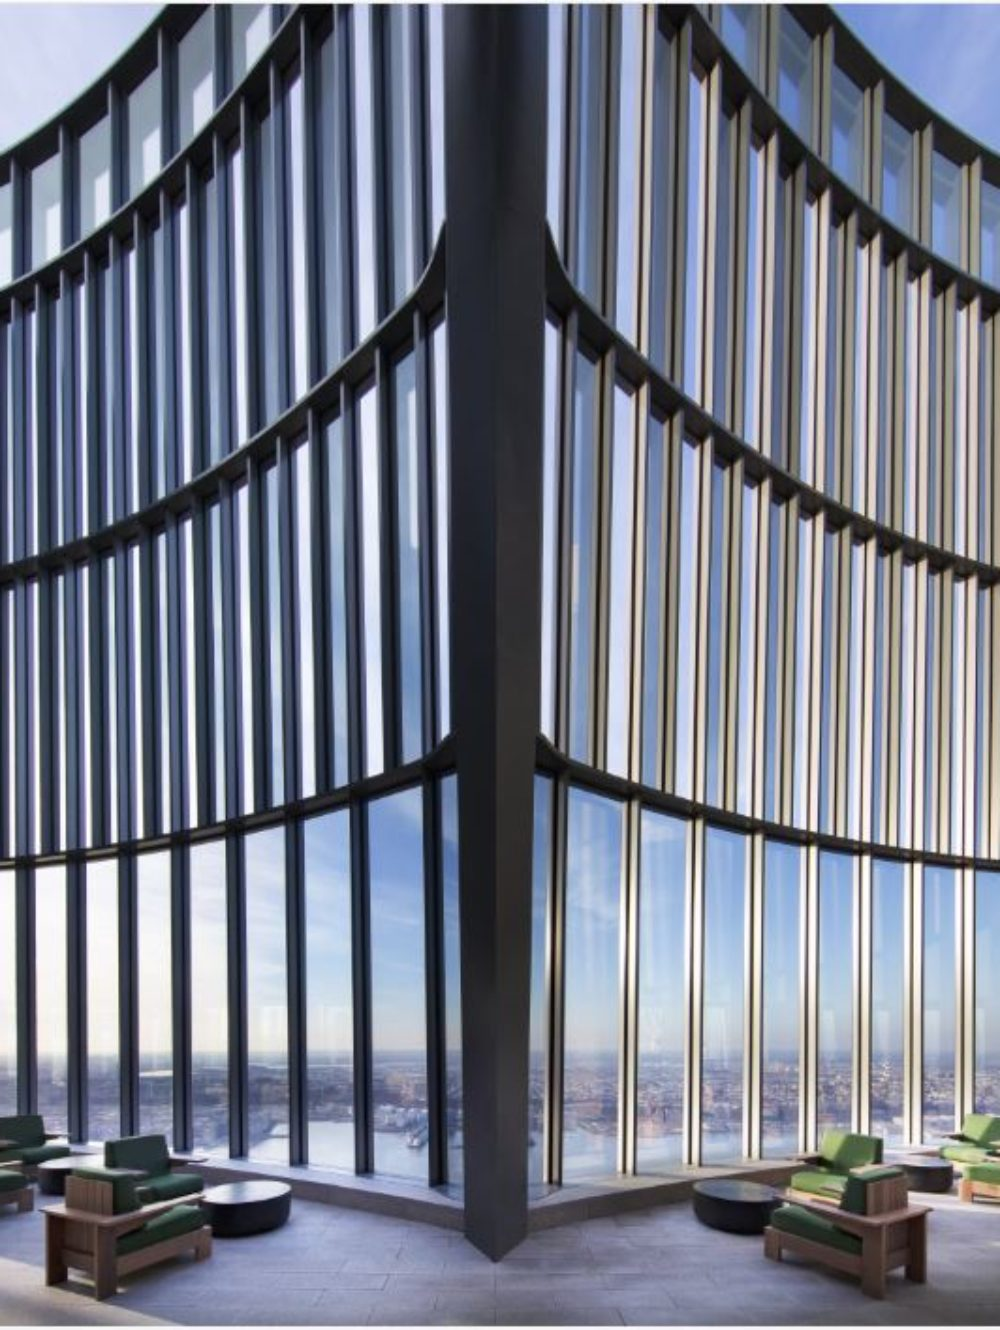 View of rooftop lounge on top of 15 Hudson Yards condominiums with view of New York City. Includes detailed glass structure.